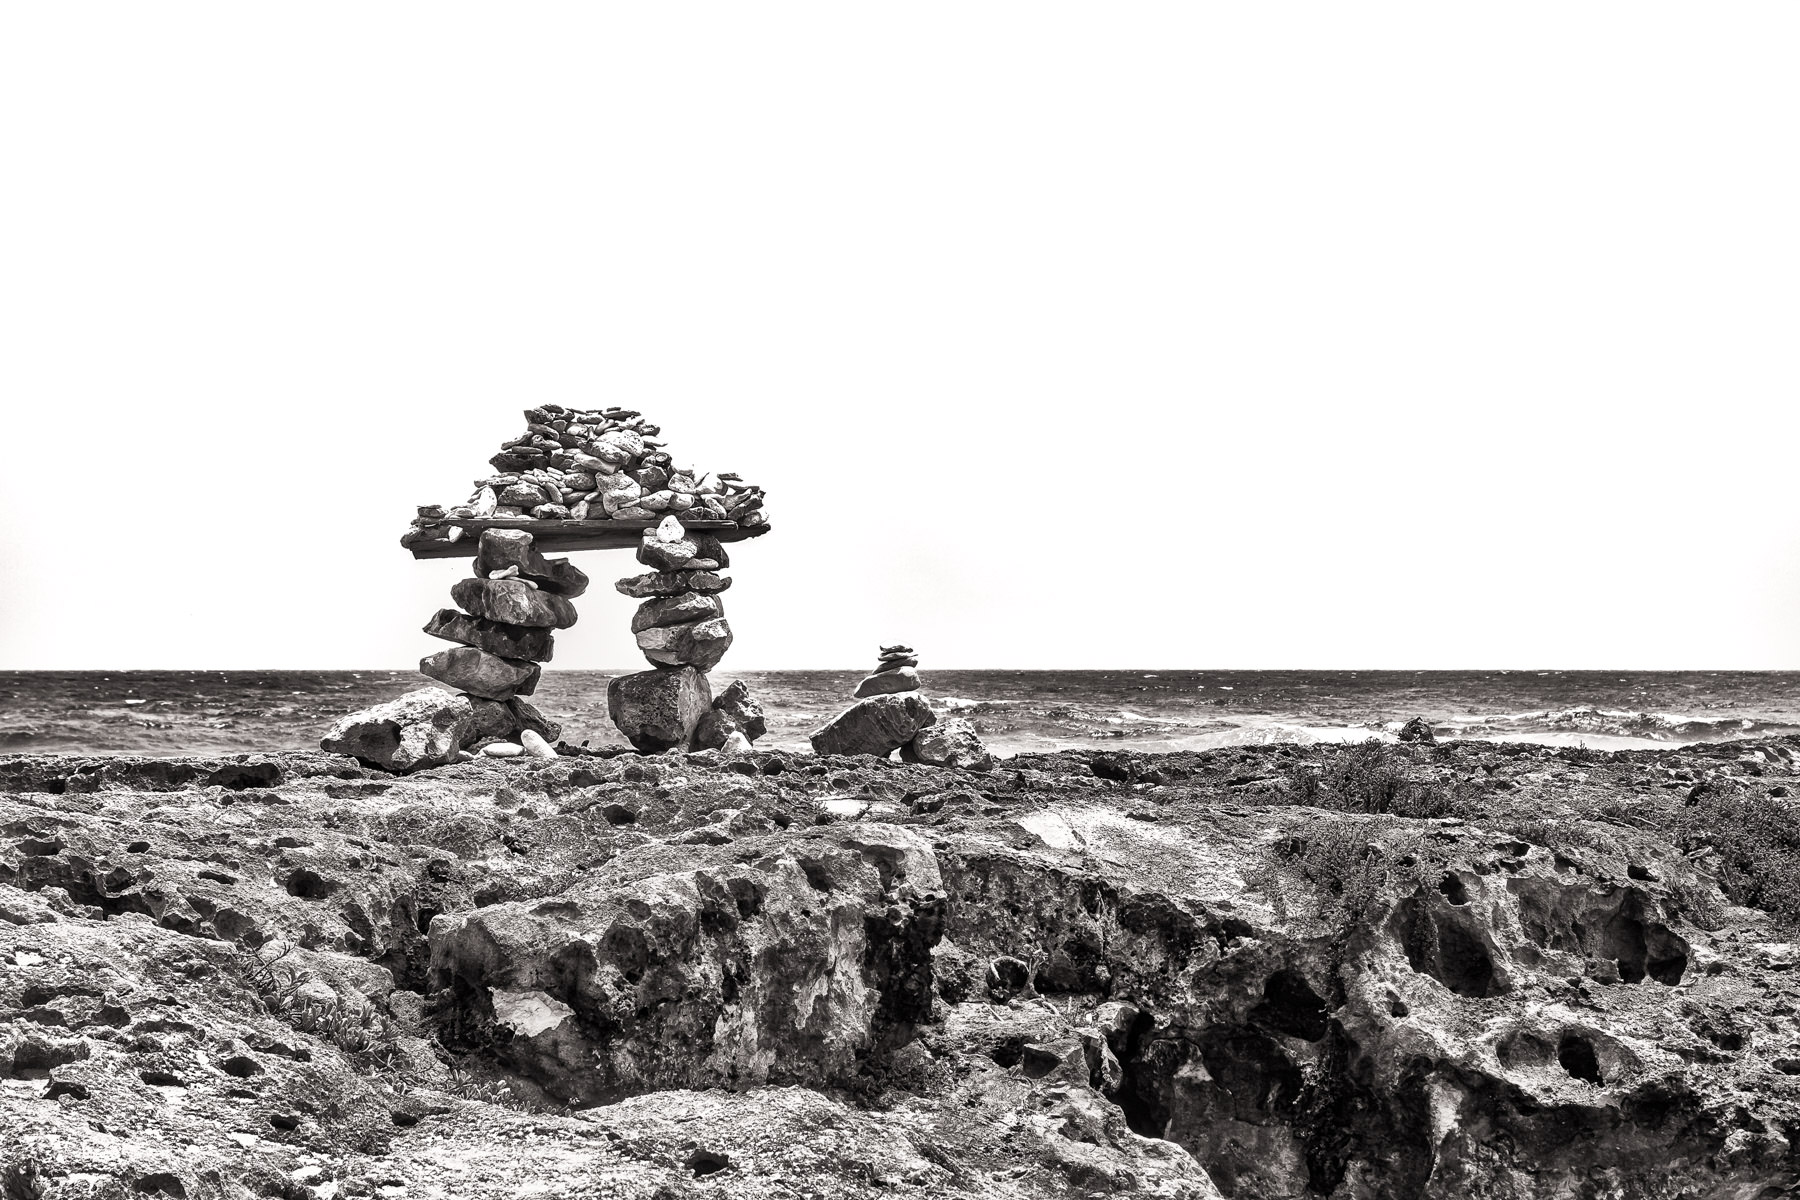 An inukshuk—a stone landmark traditionally constructed by the Inuit of far north Canada, Alaska and Greenland—inexplicably found on a rocky beach on Cozumel, Mexico.